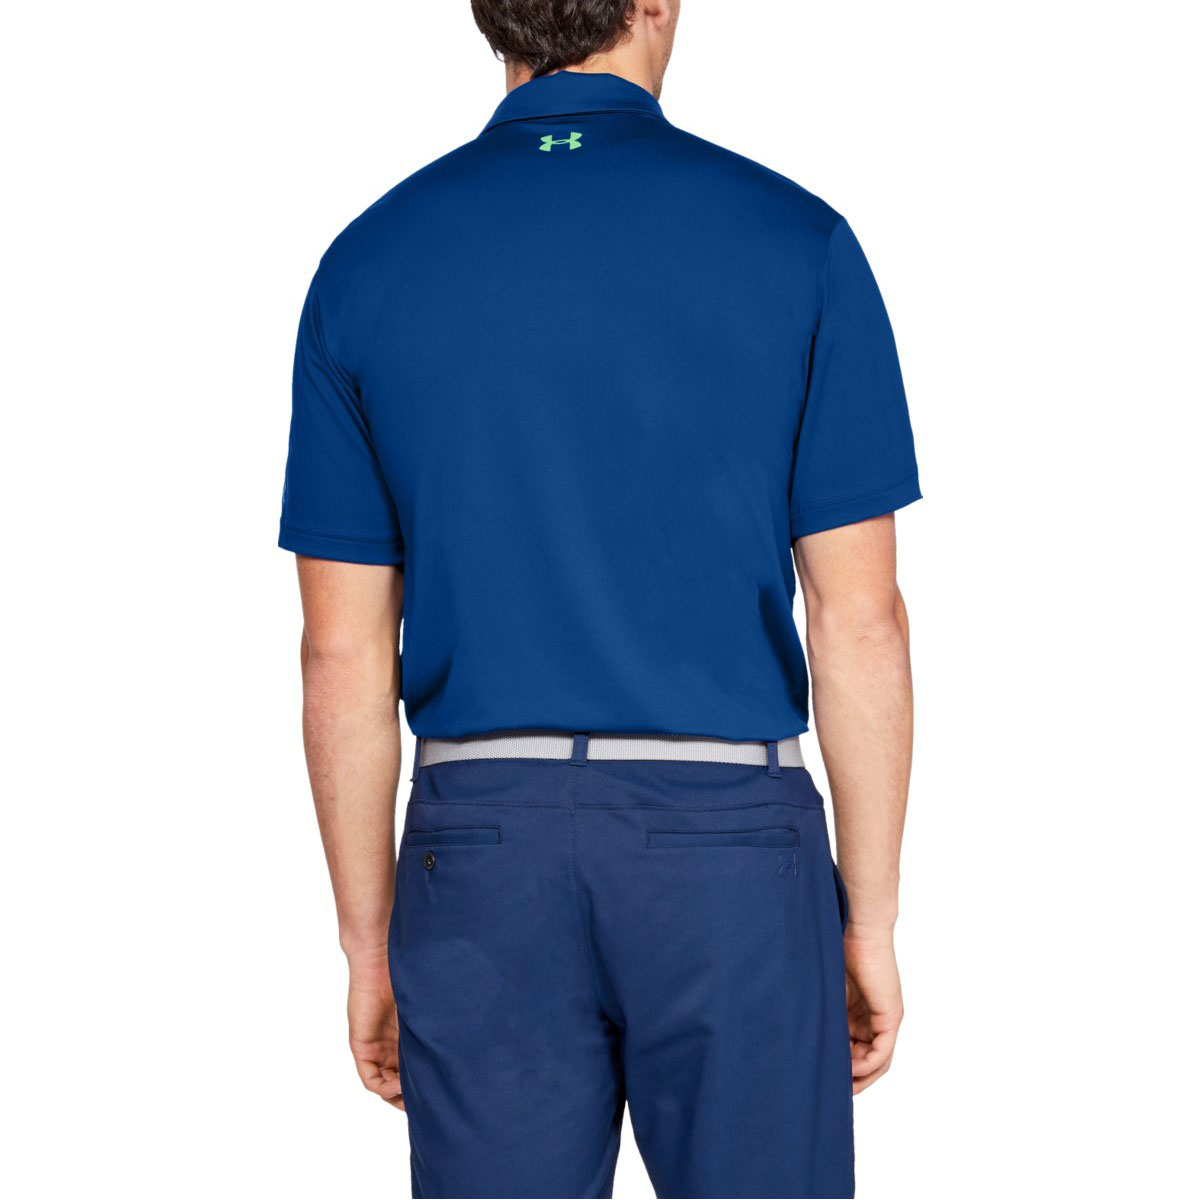 Under-Armour-Mens-UA-Playoff-Performance-Golf-Polo-Shirt-33-OFF-RRP thumbnail 85